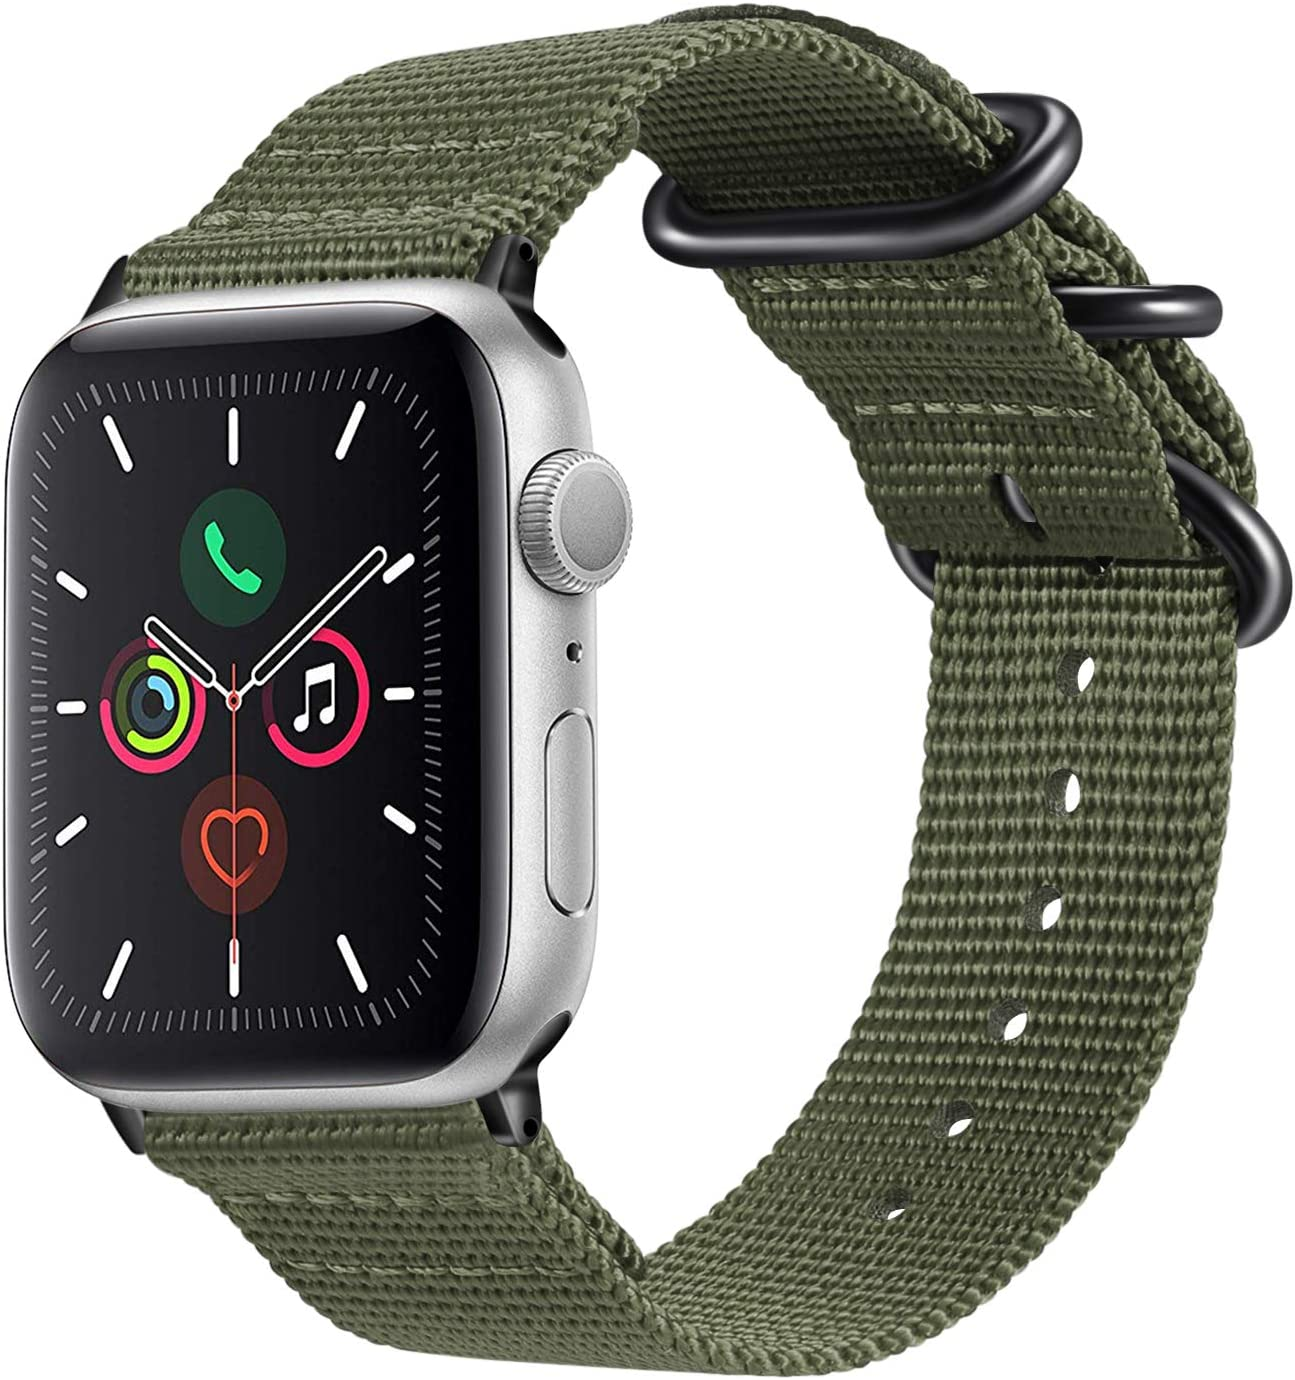 Fintie Band Compatible with Apple Watch 44mm 42mm Series 6/5/4/3/2/1 iWatch SE, Lightweight Breathable Woven Nylon Sport Wrist Strap with Metal Buckle Compatible /w All Versions 44mm 42mm Apple Watch